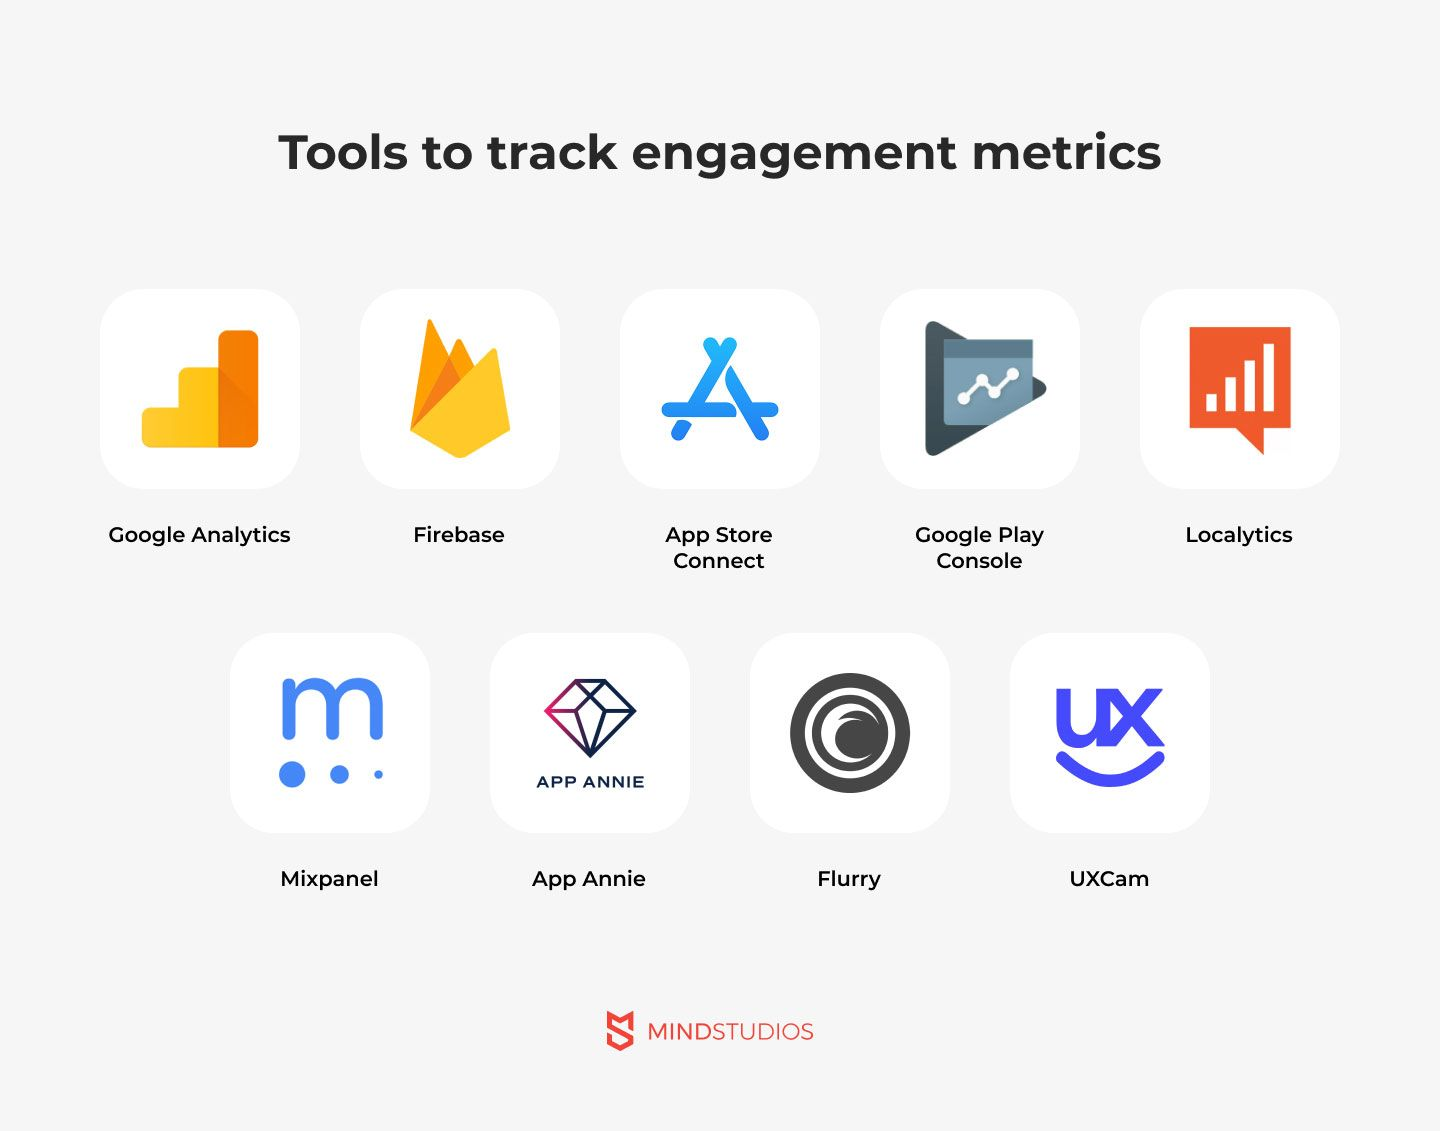 Tools to track user engagement metrics